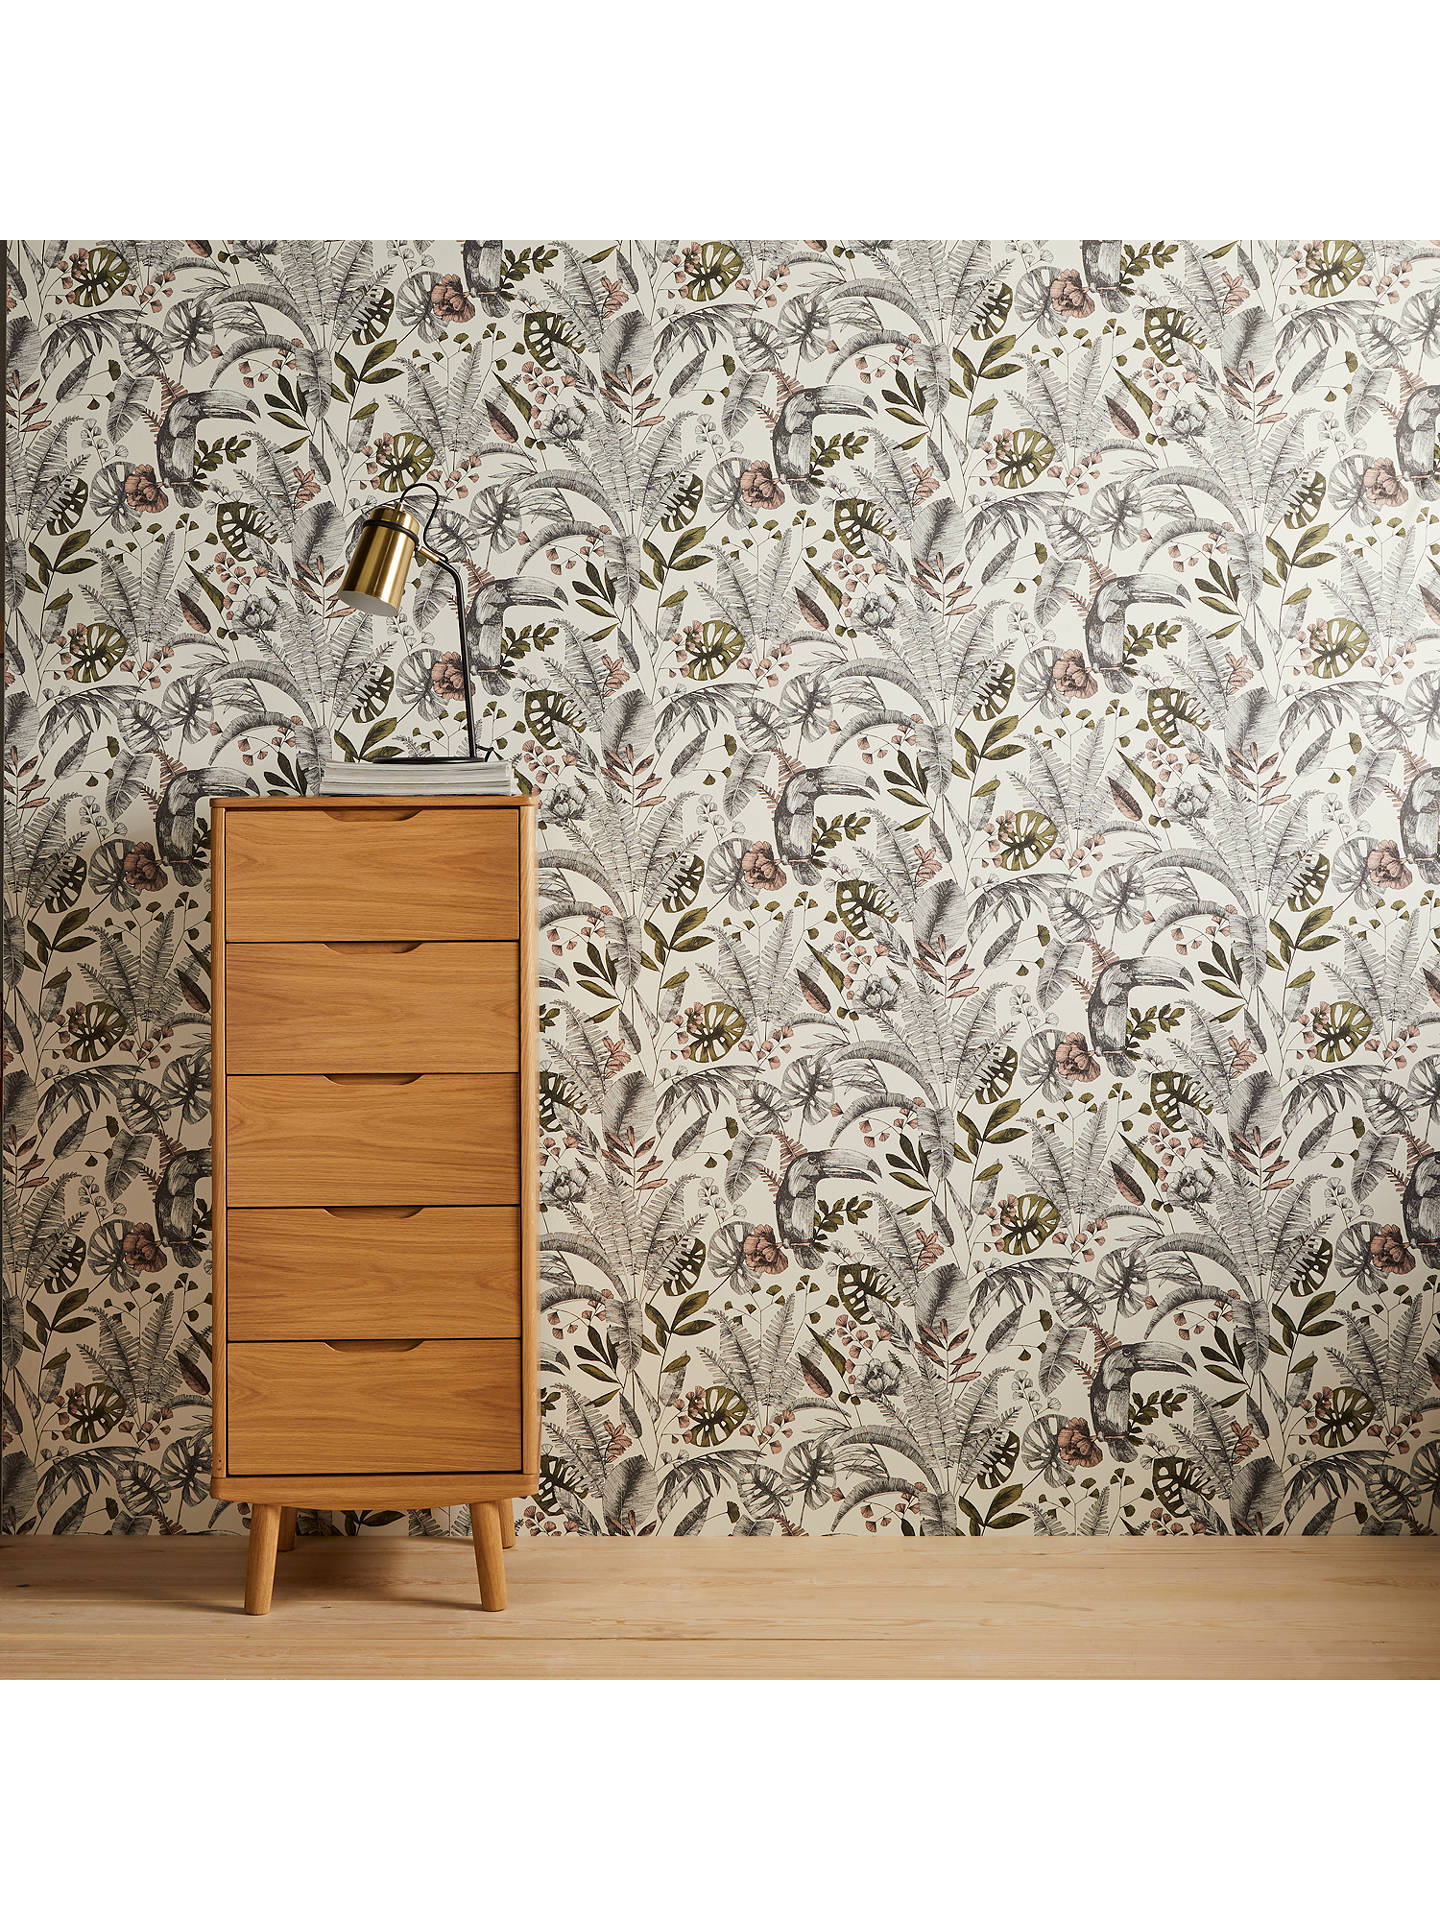 Buy John Lewis & Partners Ipanema Heritage Paste the Wall Wallpaper, Plaster Pink Online at johnlewis.com